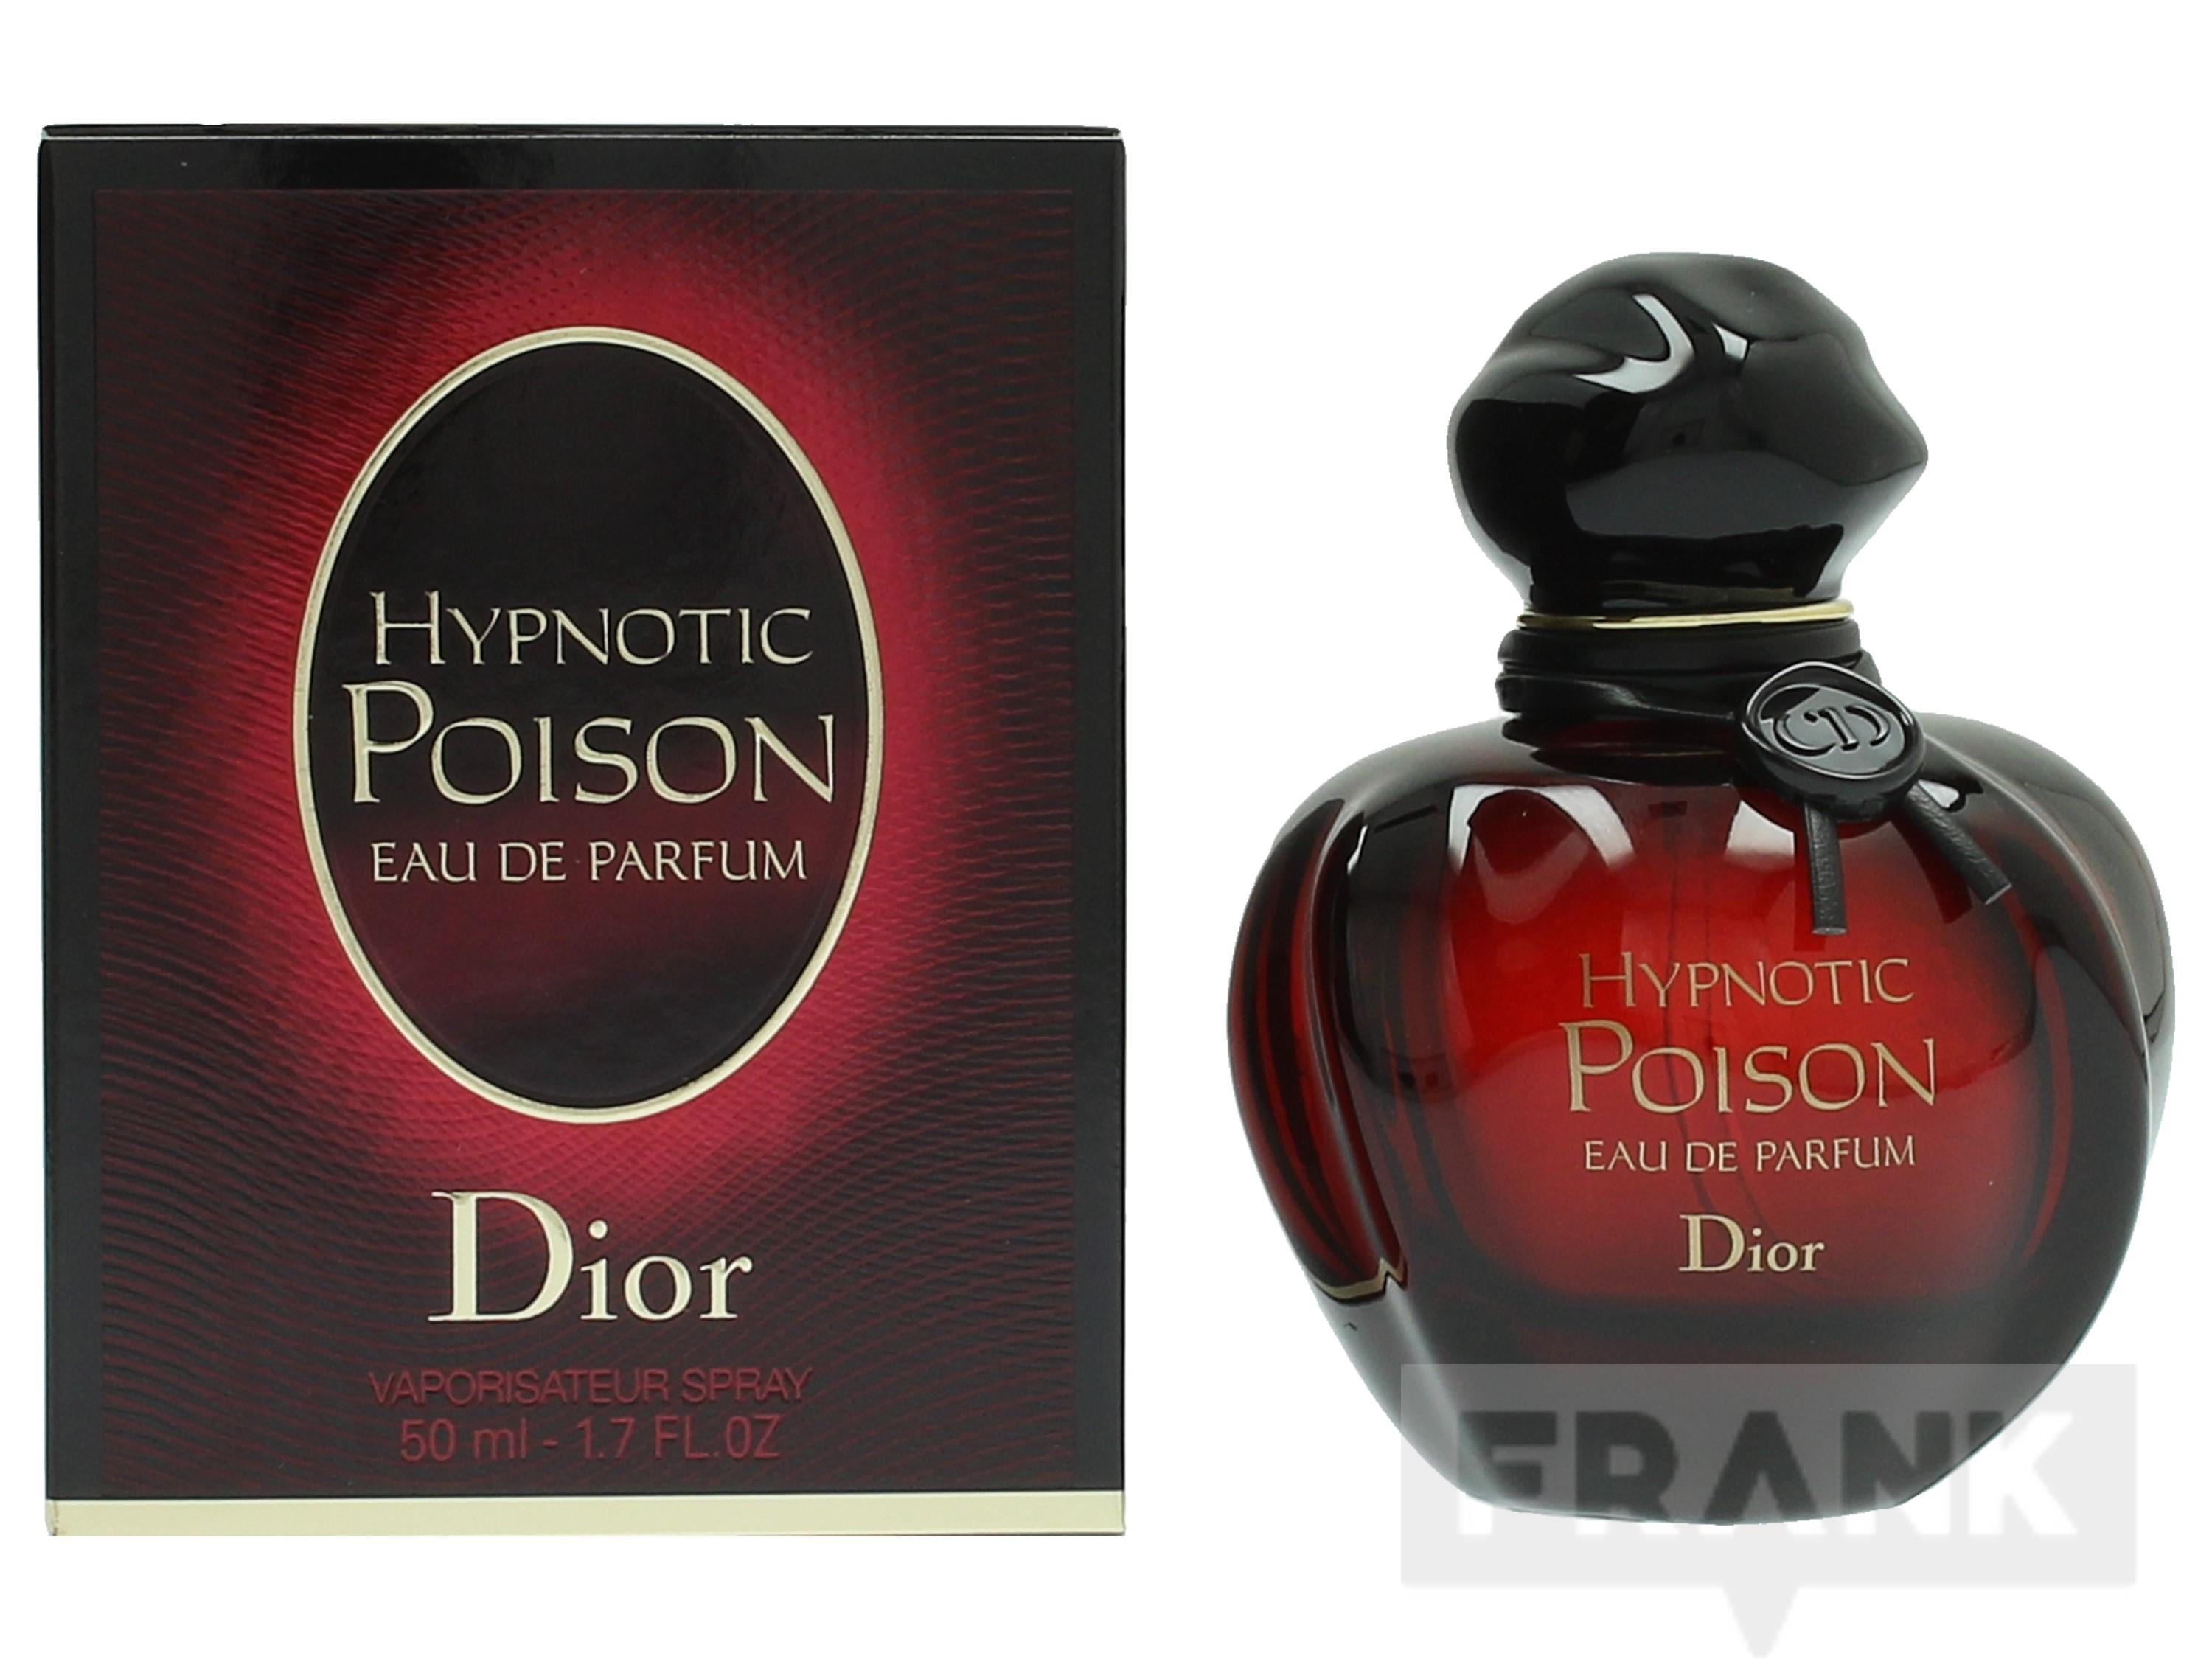 Dior Hypnotic Poison Edp Spray